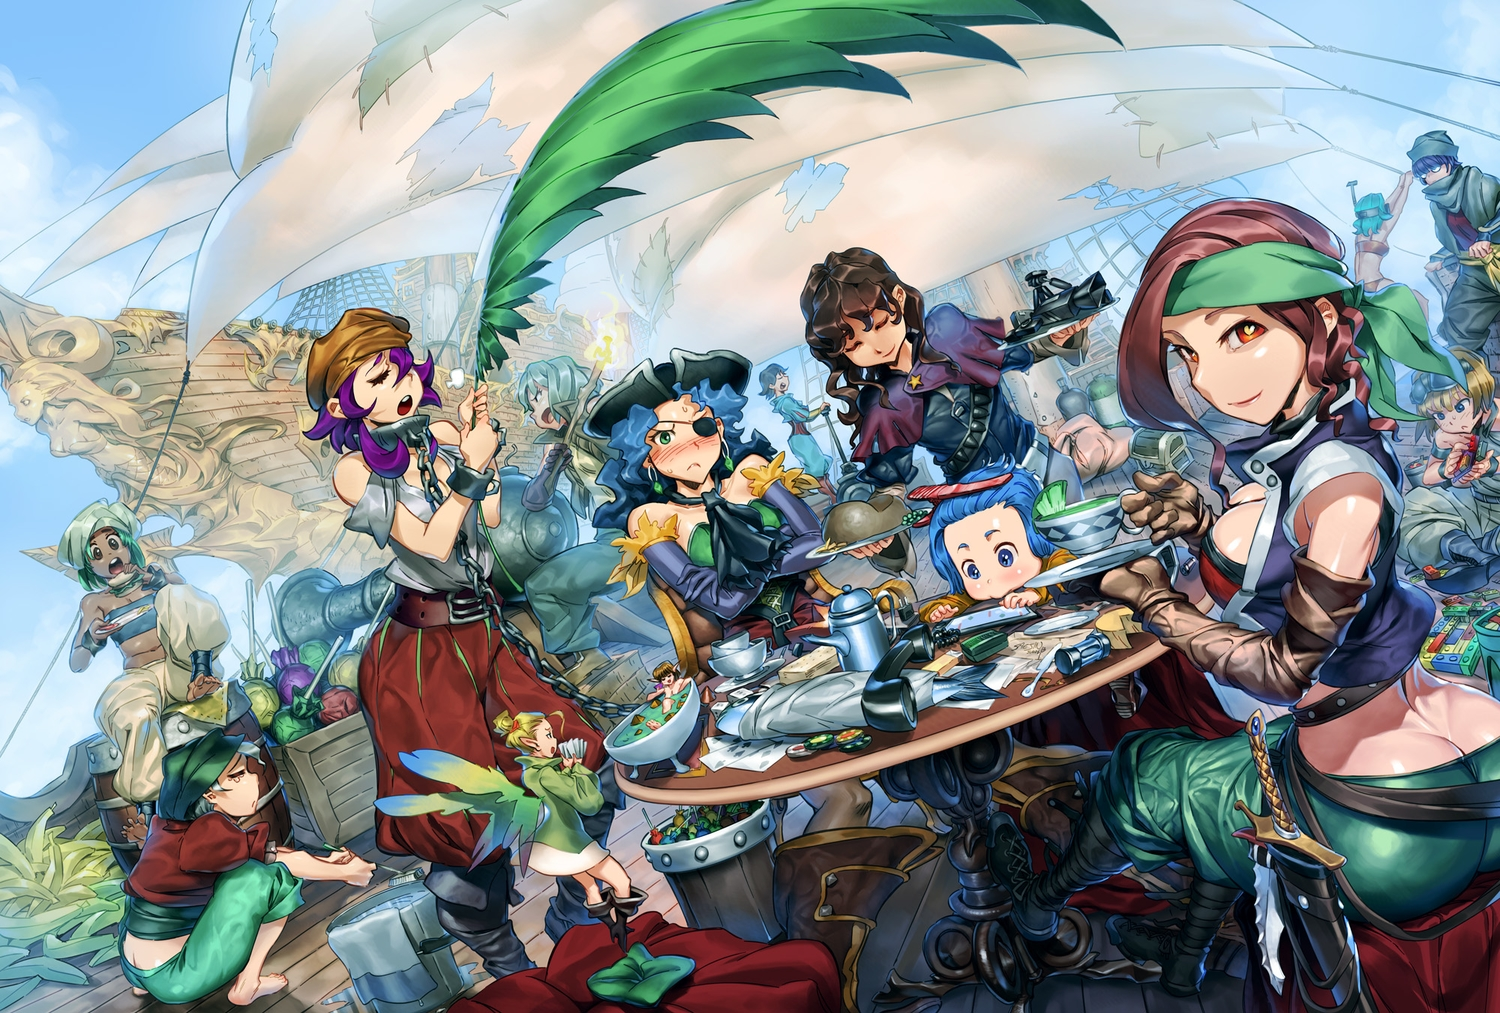 animal ass barefoot black_hair blonde_hair blue_eyes blue_hair blush boat boots breasts brown_eyes brown_hair candy chain cleavage collar drink elbow_gloves eyepatch fairy fish food gloves gray_hair green_eyes green_hair group hat headband knife lollipop pirate pointed_ears purple_hair red_eyes saejin_oh shackles short_hair sword weapon wings